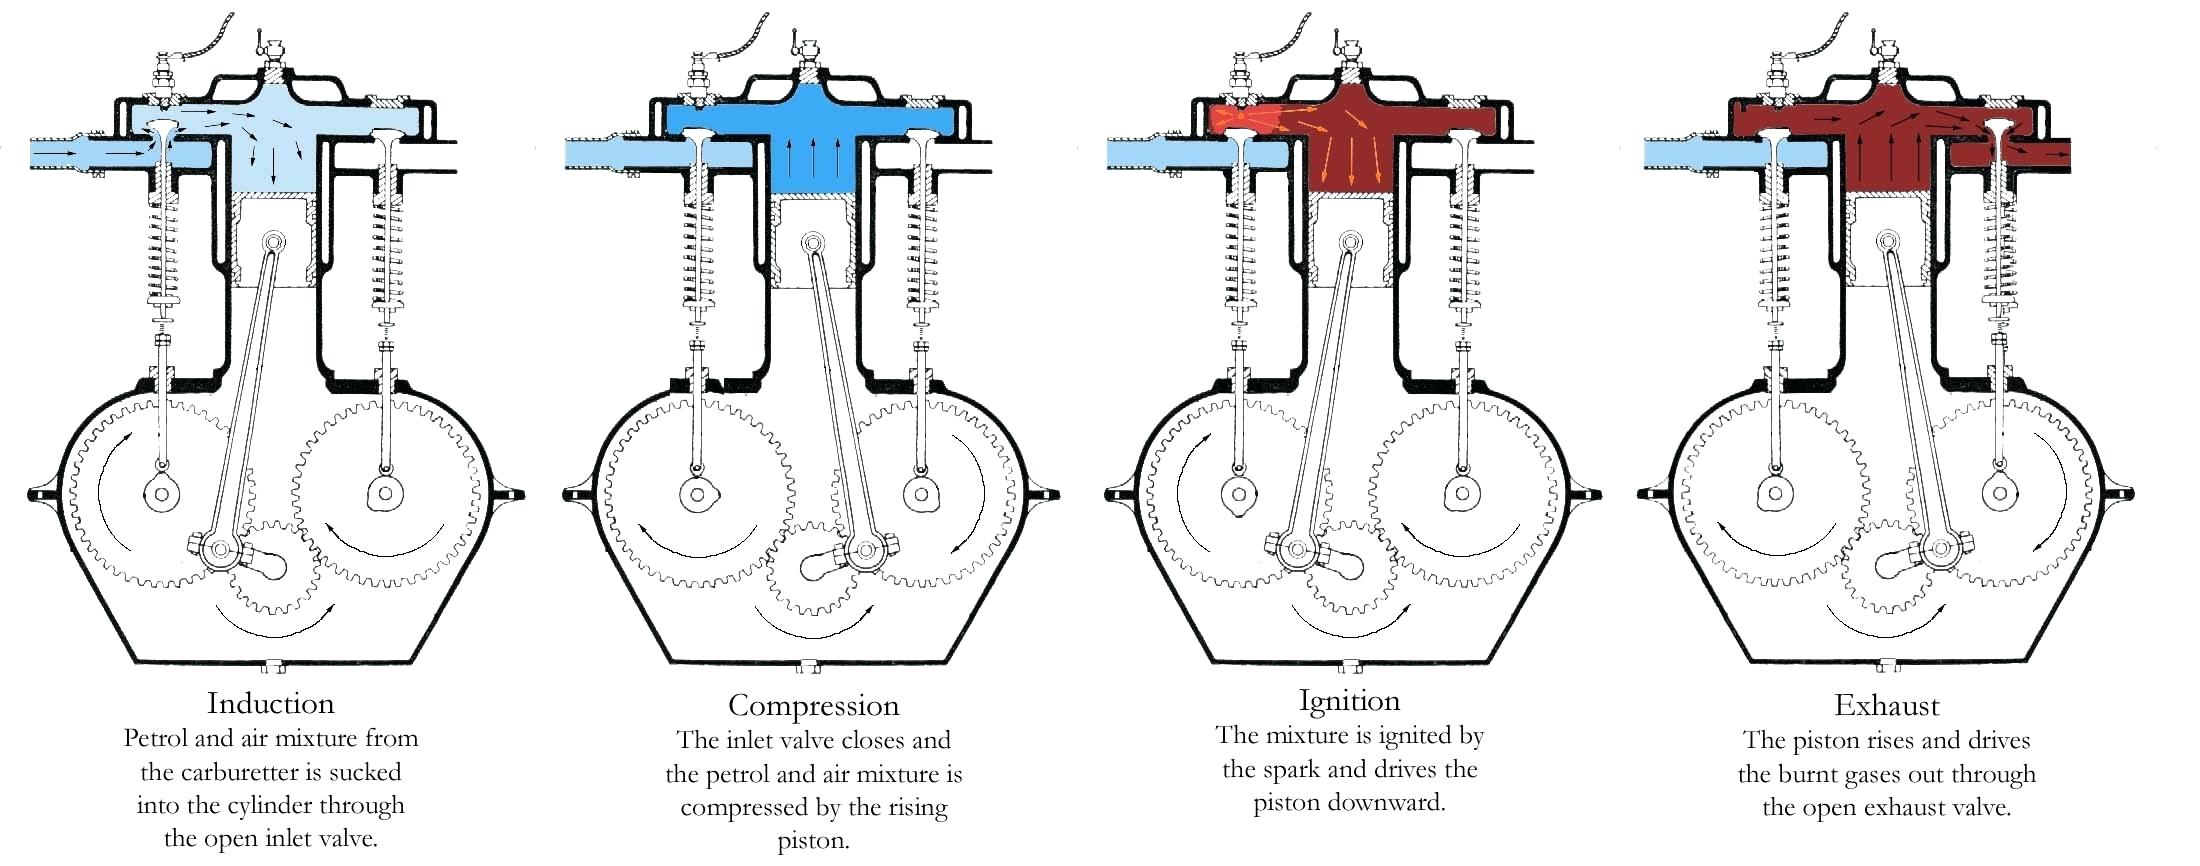 six-stroke-engine-diagram-the-cycle